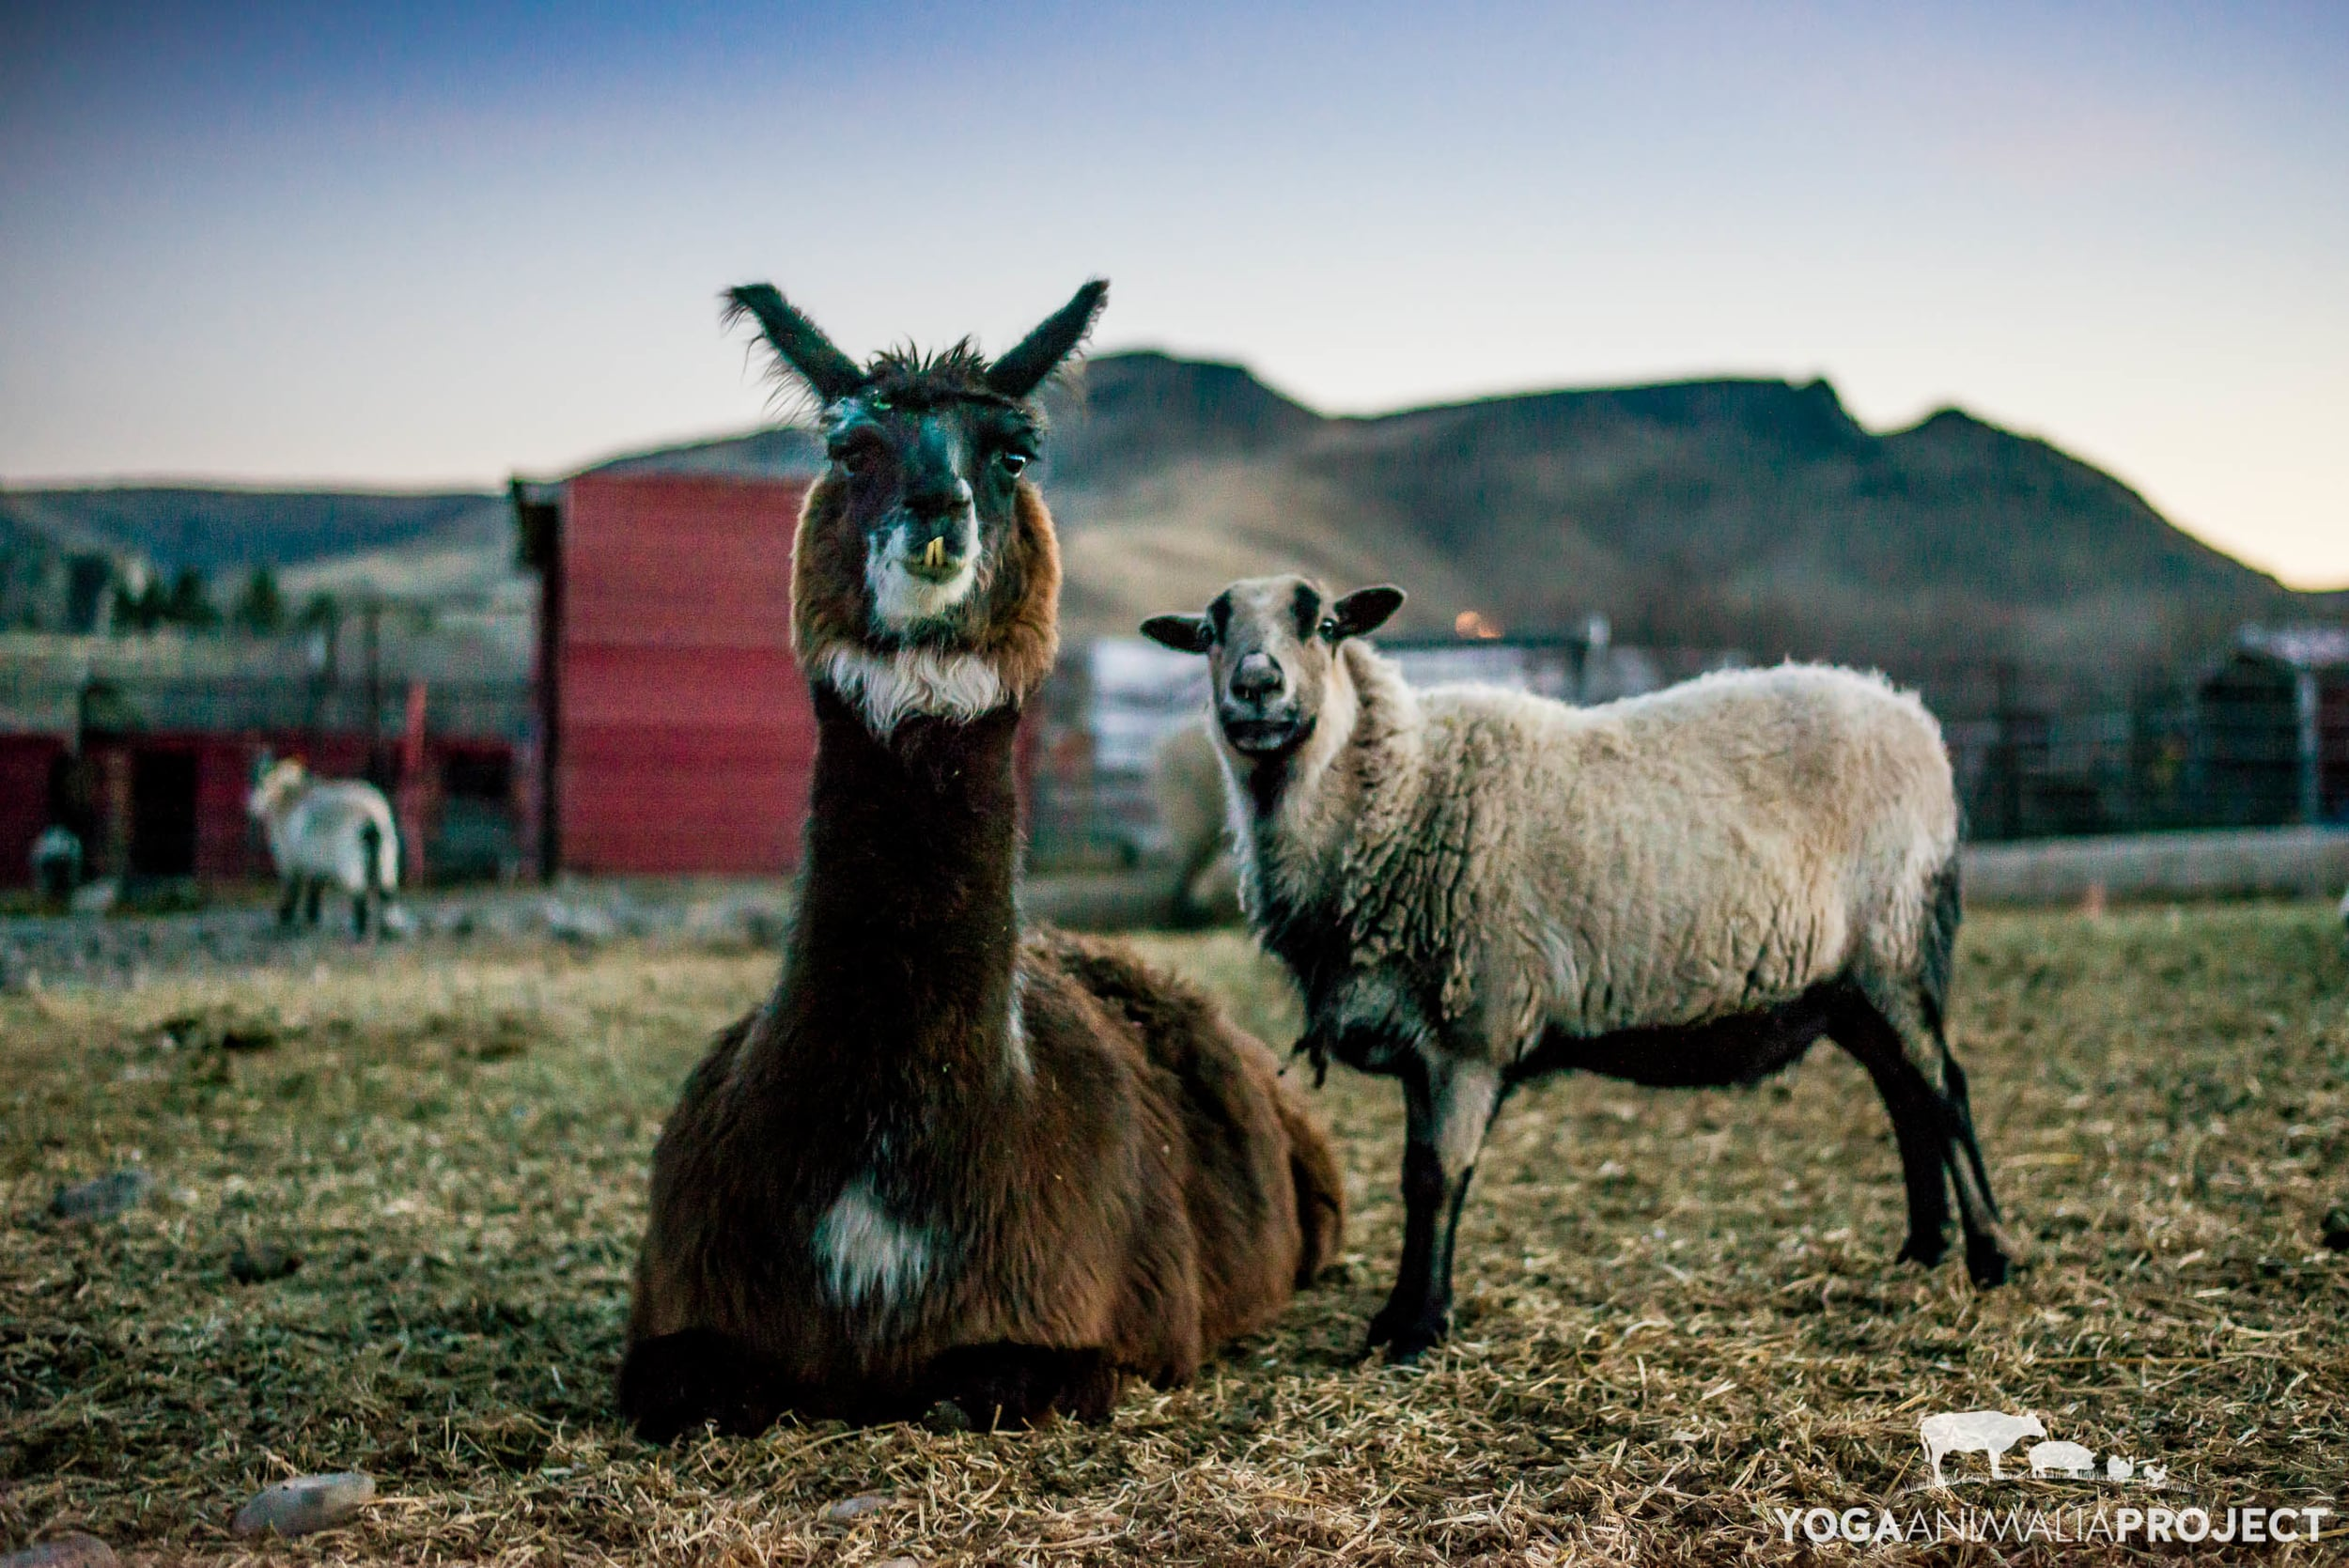 Bandit & Rose, Ching Farm Rescue & Sanctuary, Herriman, Utah